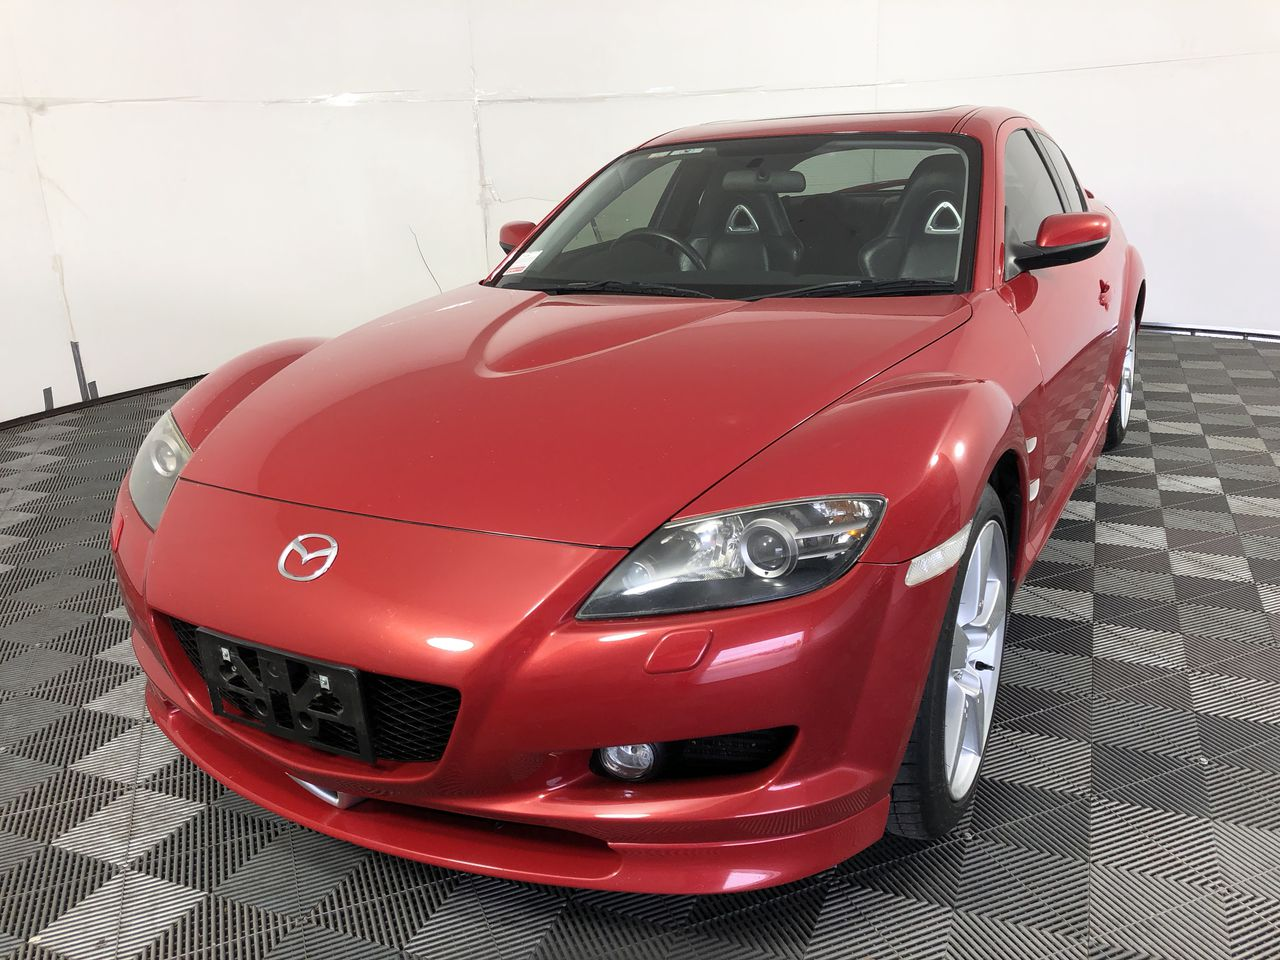 2007 Mazda RX-8 Auto Leather/Roof Pack Coupe, 112,590km (Service History)